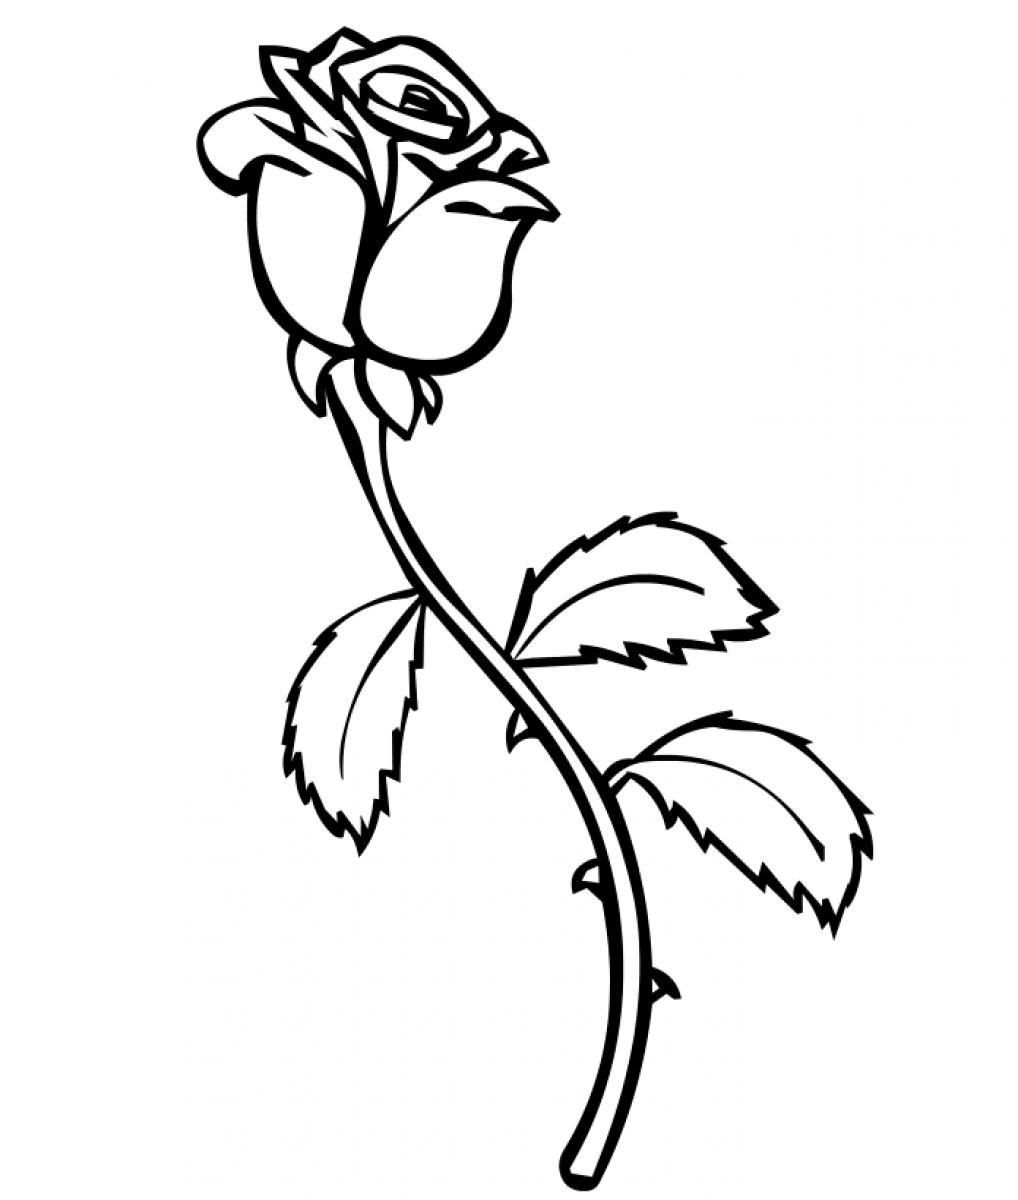 Printable Roses to Color - Bing Images | tim drawing board ...